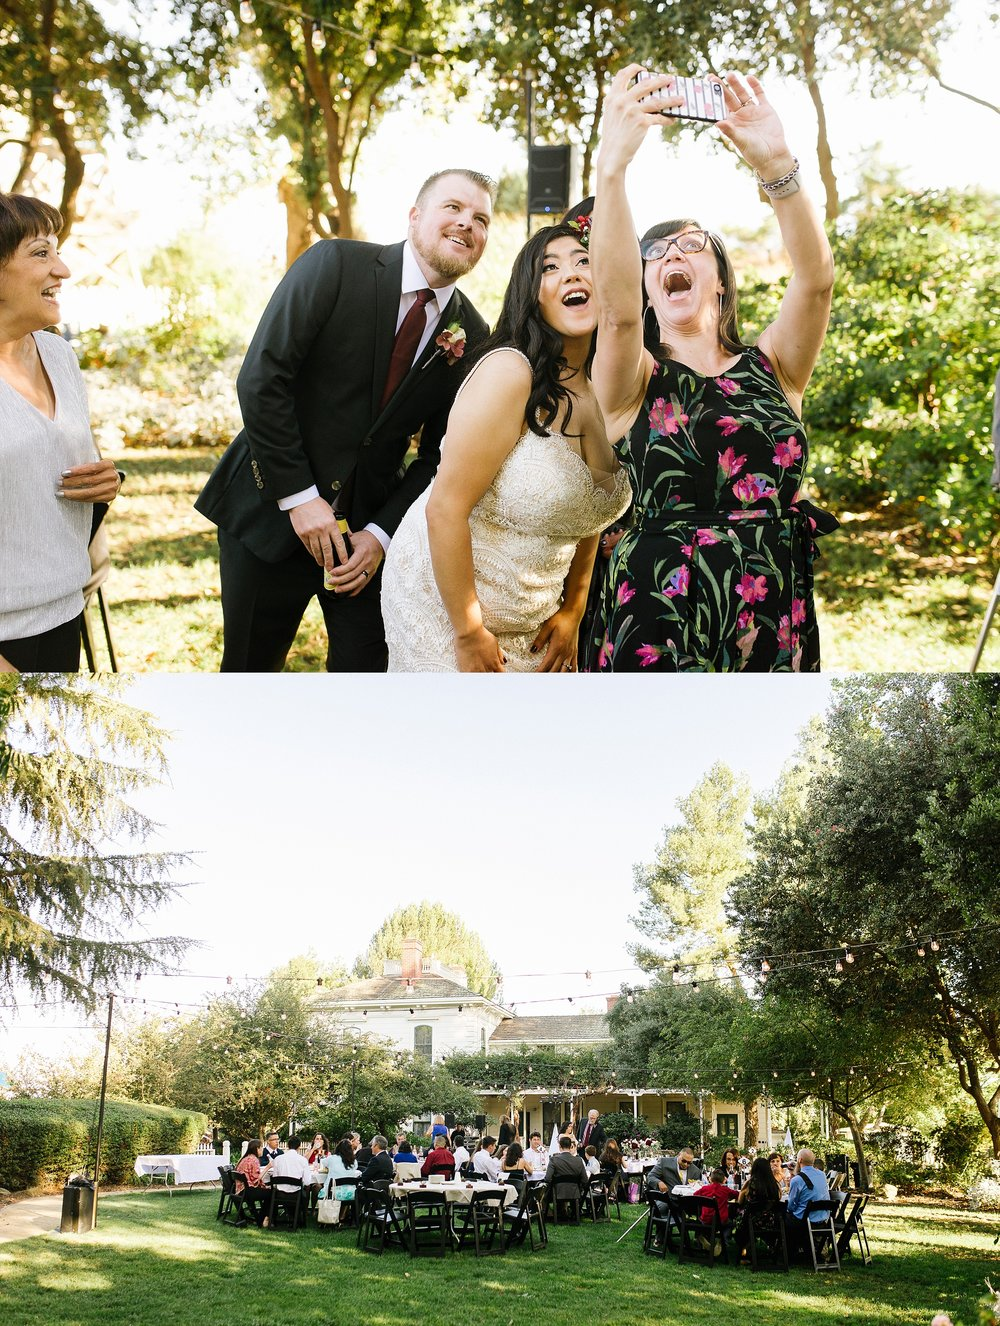 enissablake_Rengstorff_house_outdoor_wedding_cdp_0027.jpg